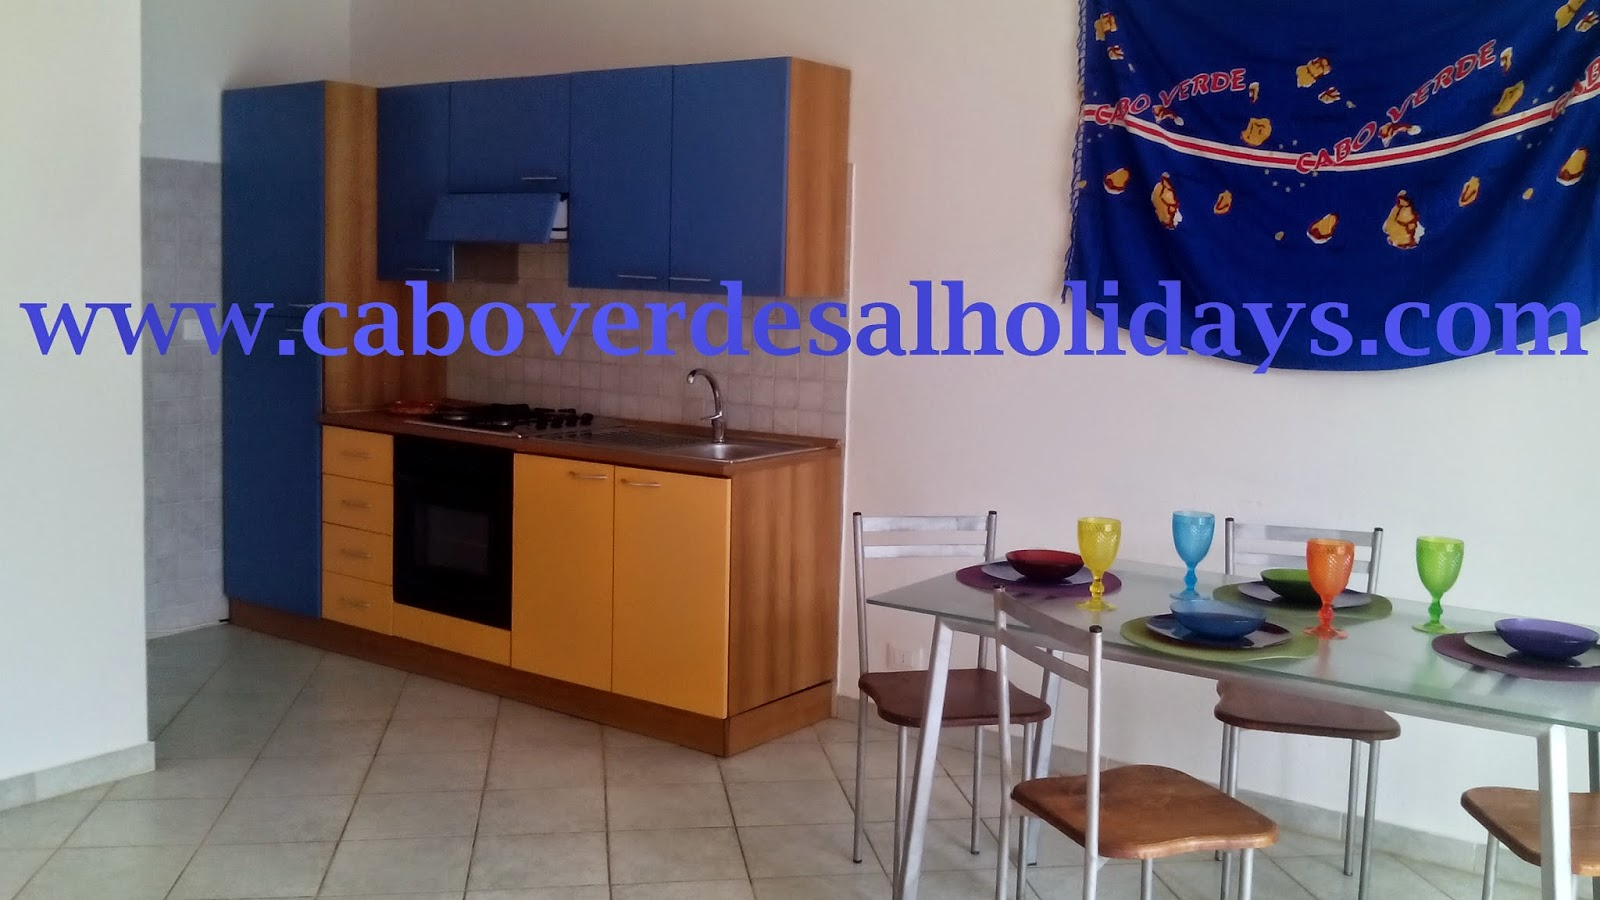 Apartments T0 | caboverdesalholidays